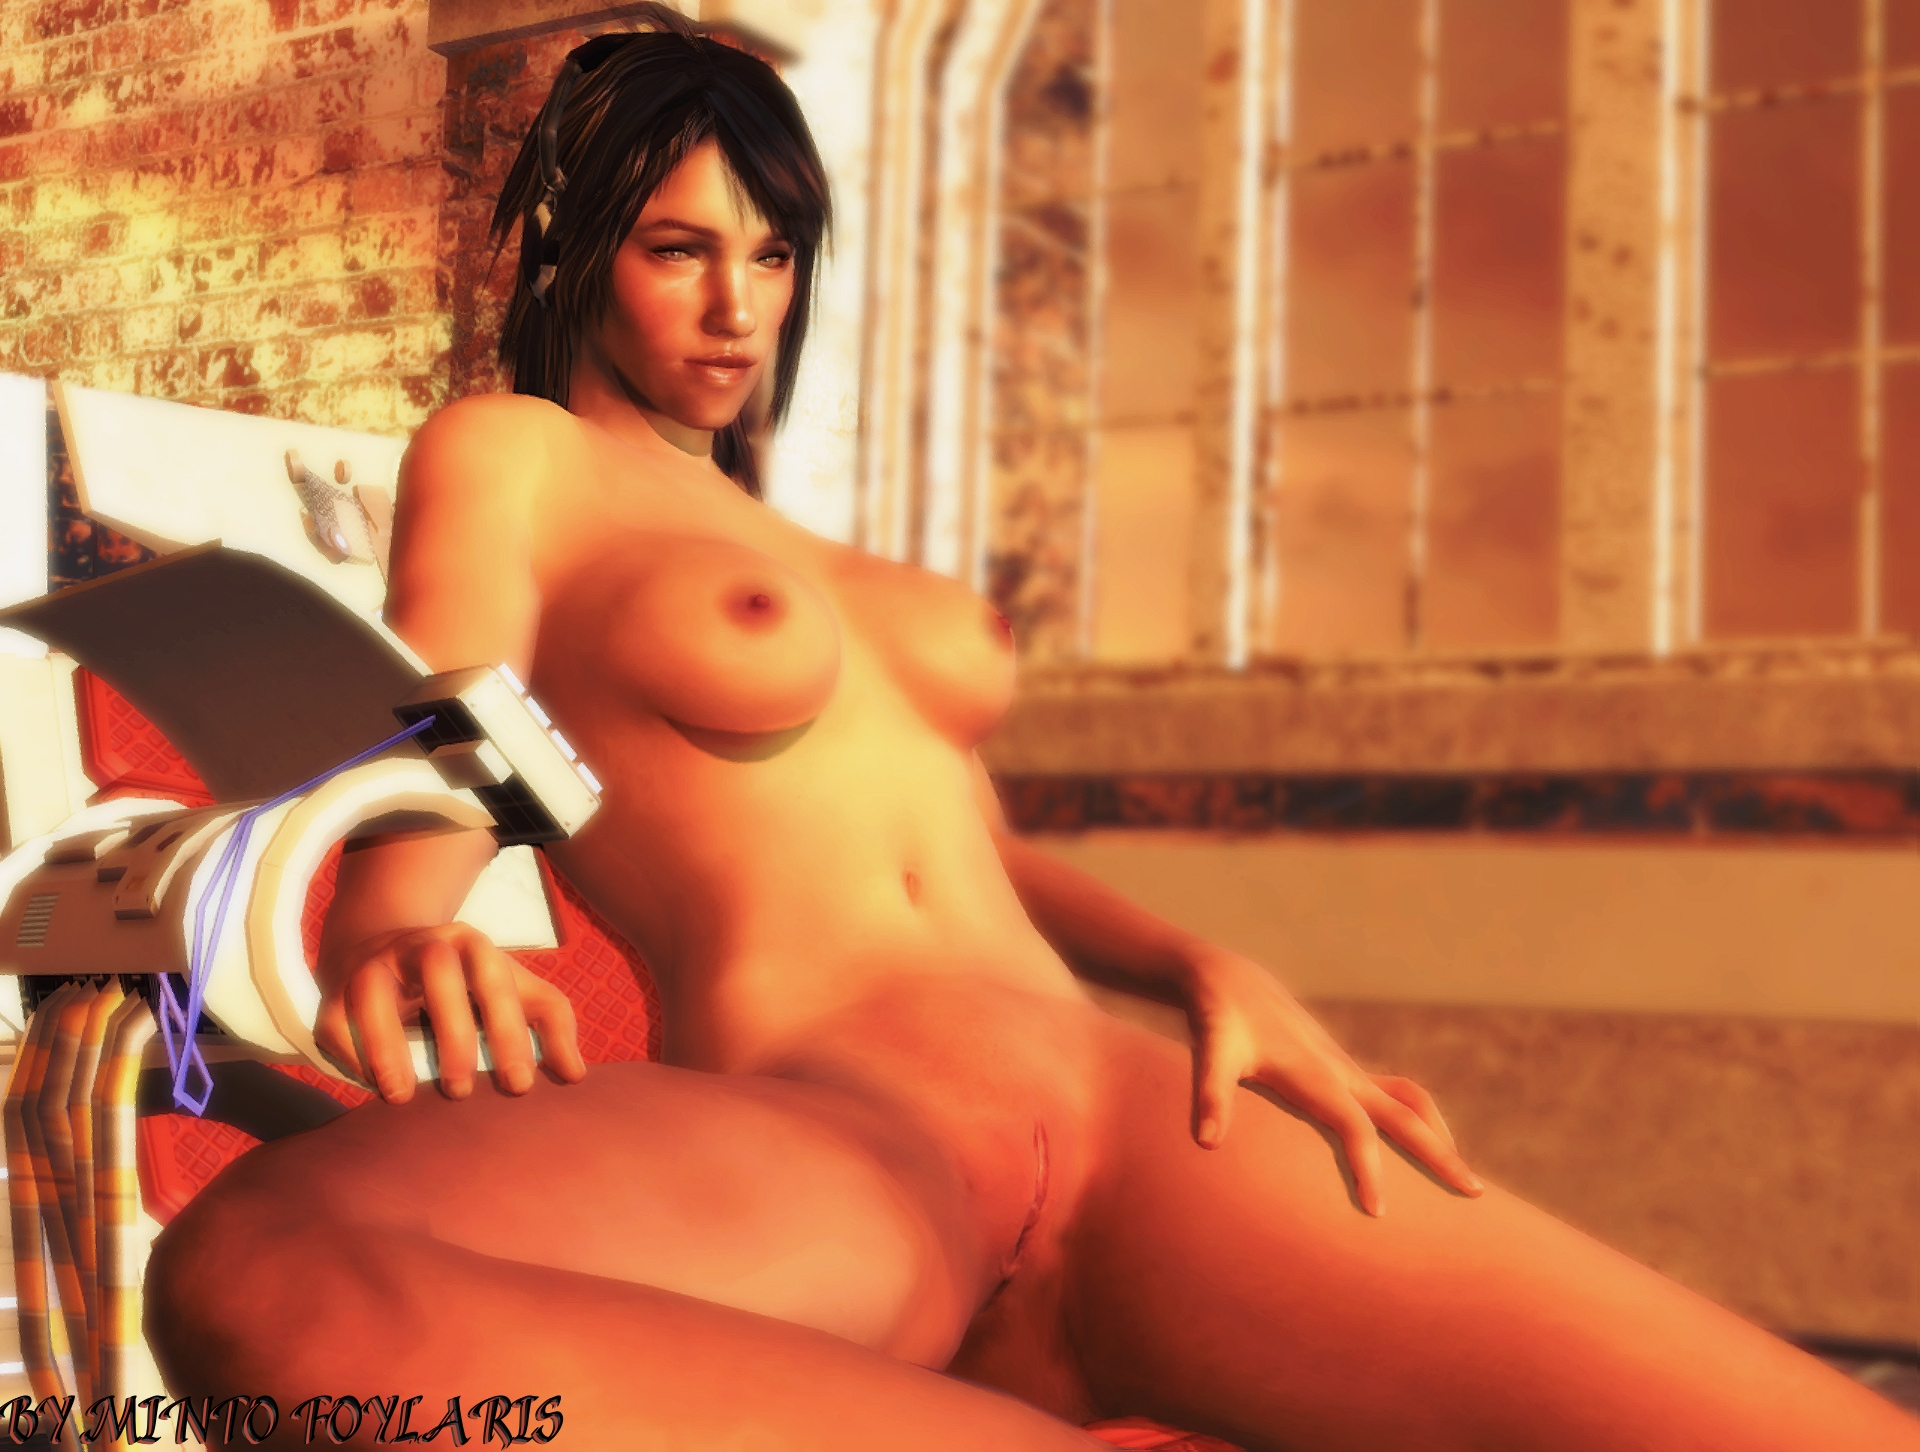 Assassins creed naked porn nackt galleries